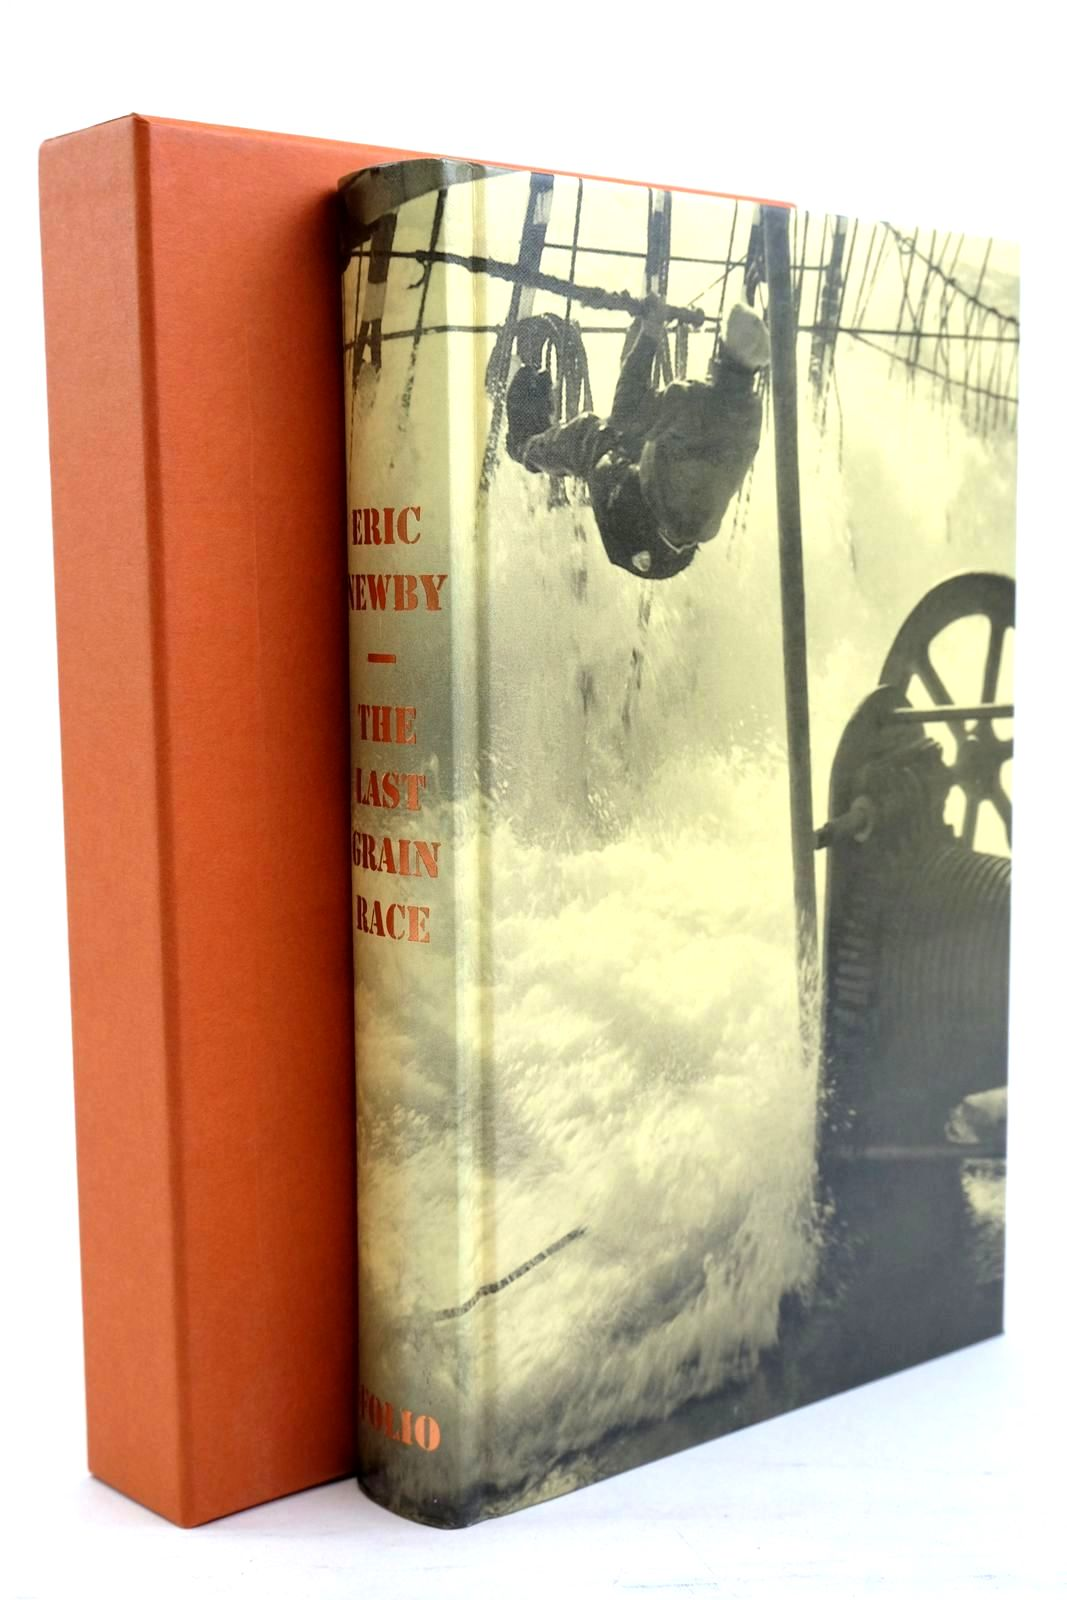 Photo of THE LAST GRAIN RACE written by Newby, Eric published by Folio Society (STOCK CODE: 1320757)  for sale by Stella & Rose's Books